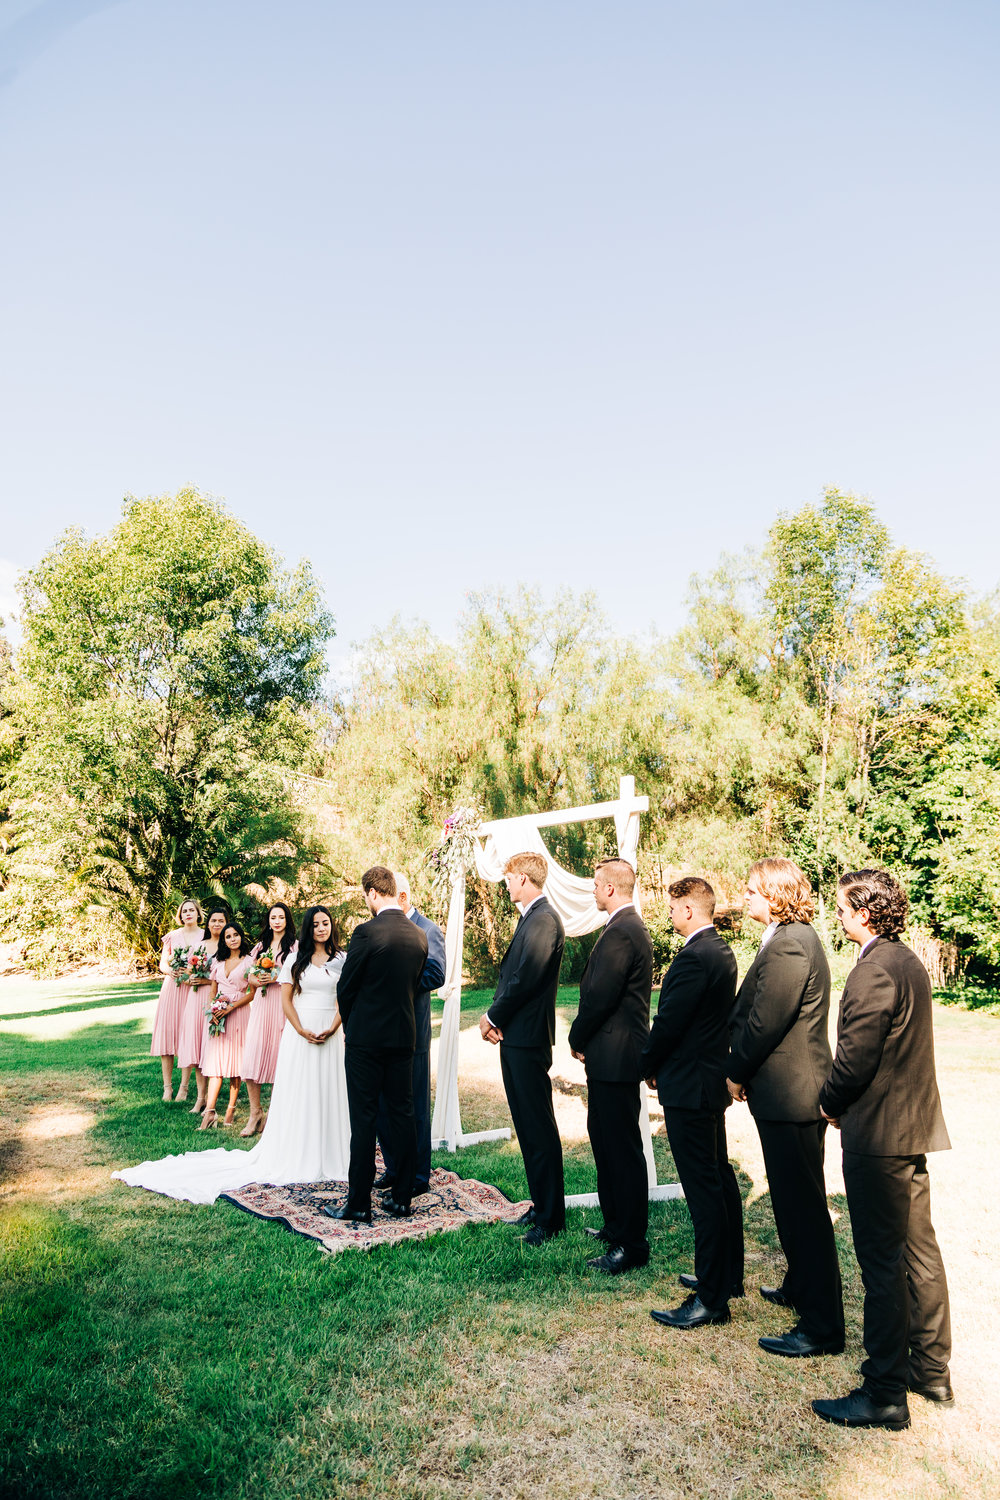 Katy&Nathan-WeddingEdits_149.jpg